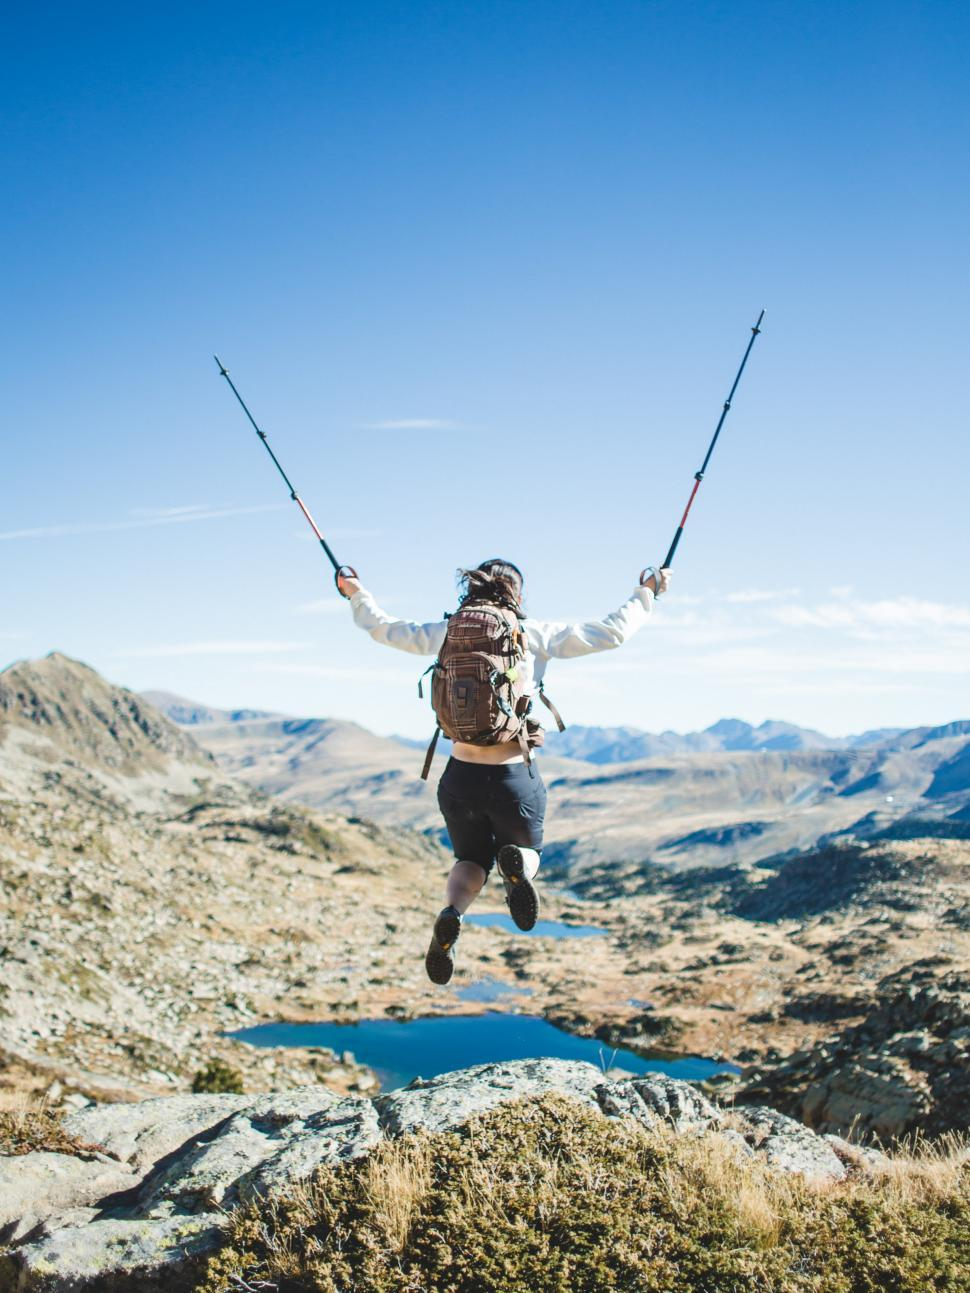 Download Free Stock Photo of A hiker jumps in joy